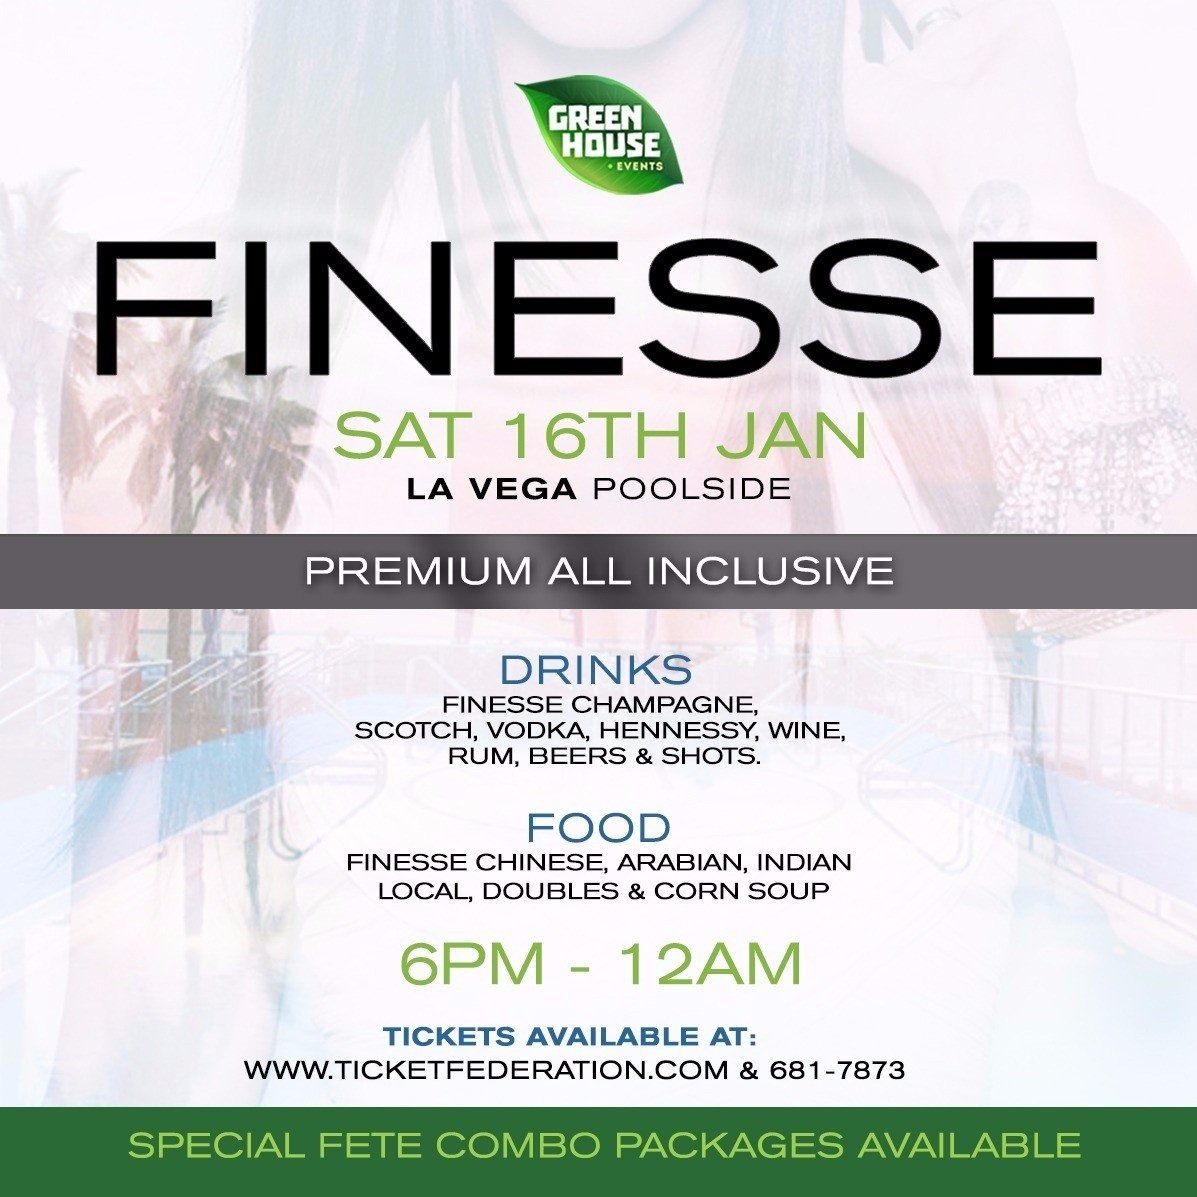 Finesse - All Inclusive